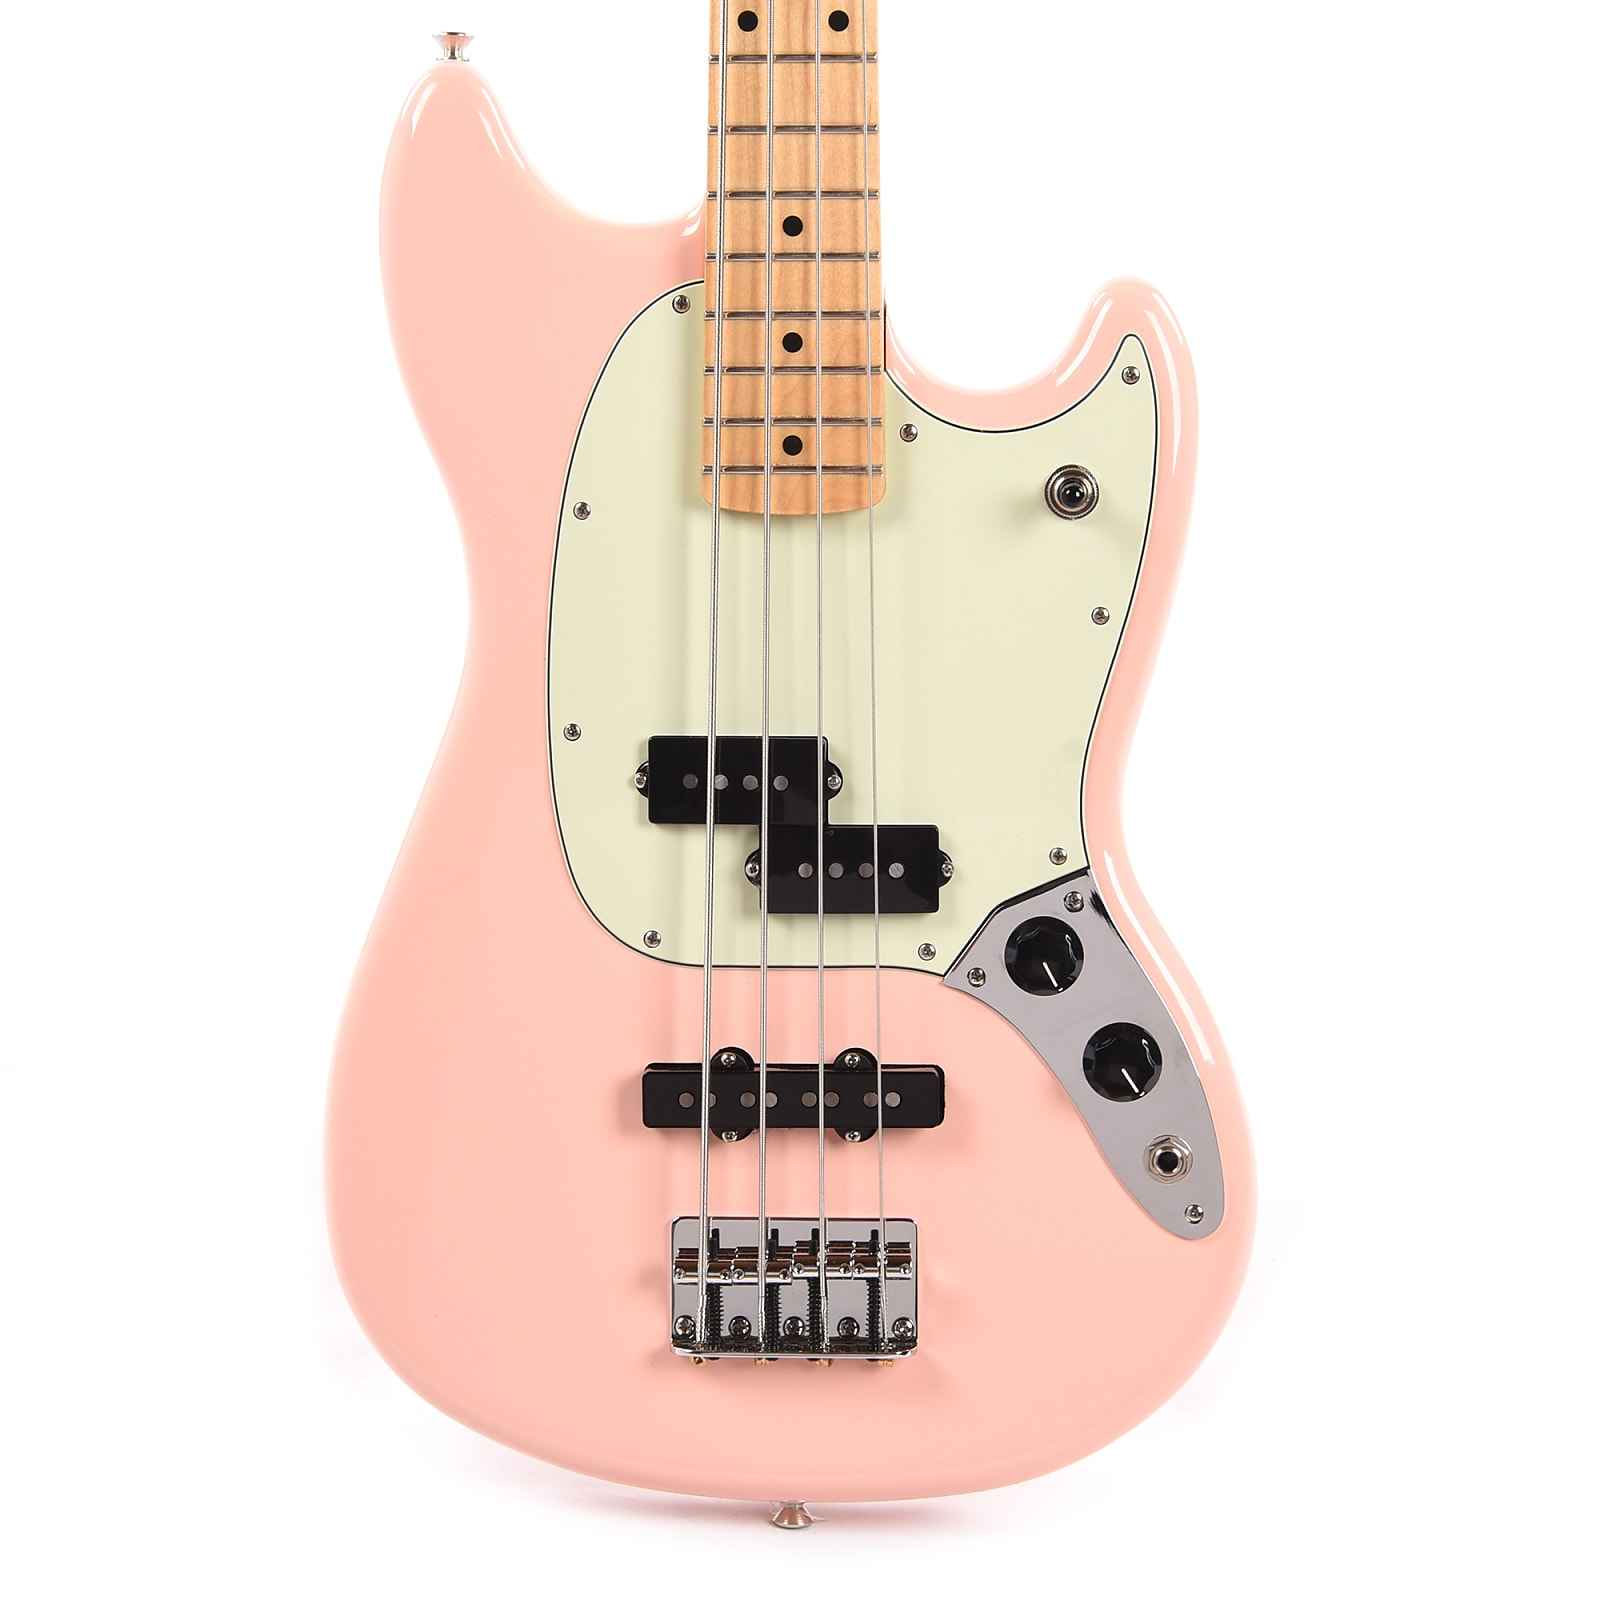 Fender Offset Series Mustang Bass PJ Shell Pink w/Mint Pickguard (CME Exclusive) Pre-Order